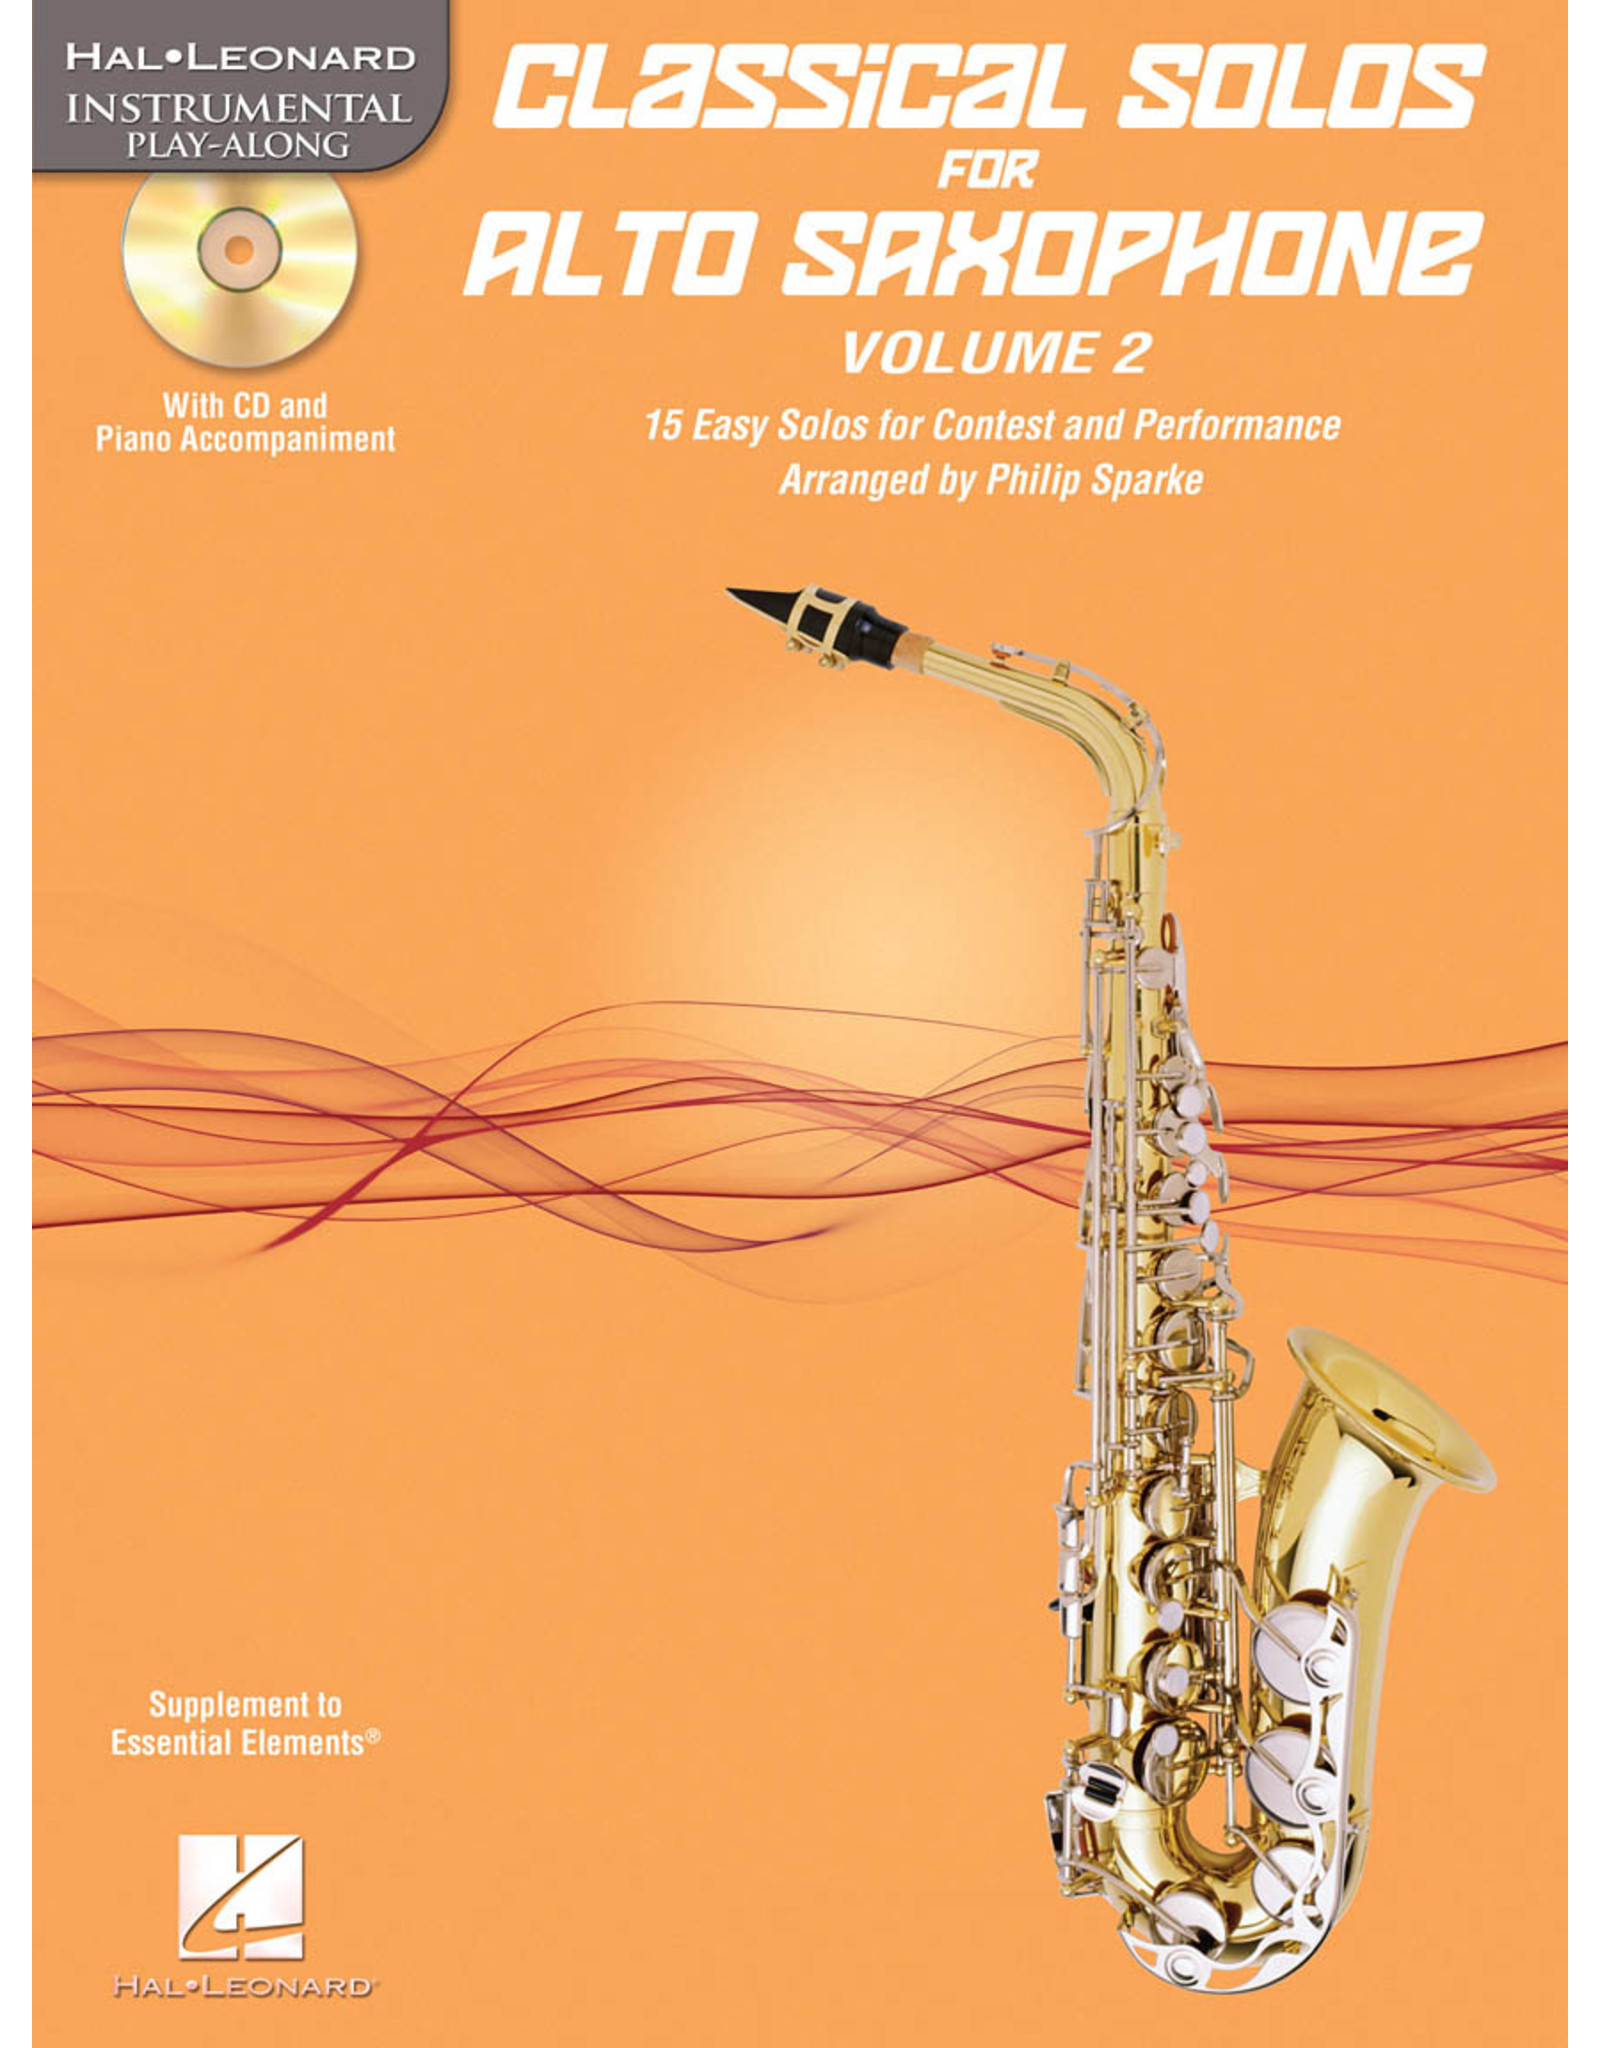 Hal Leonard Classical Solos for Alto Saxophone, Vol. 2 15 Easy Solos for Contest and Performance arr. Philip Sparke Book/CD Packs Instrumental Folio